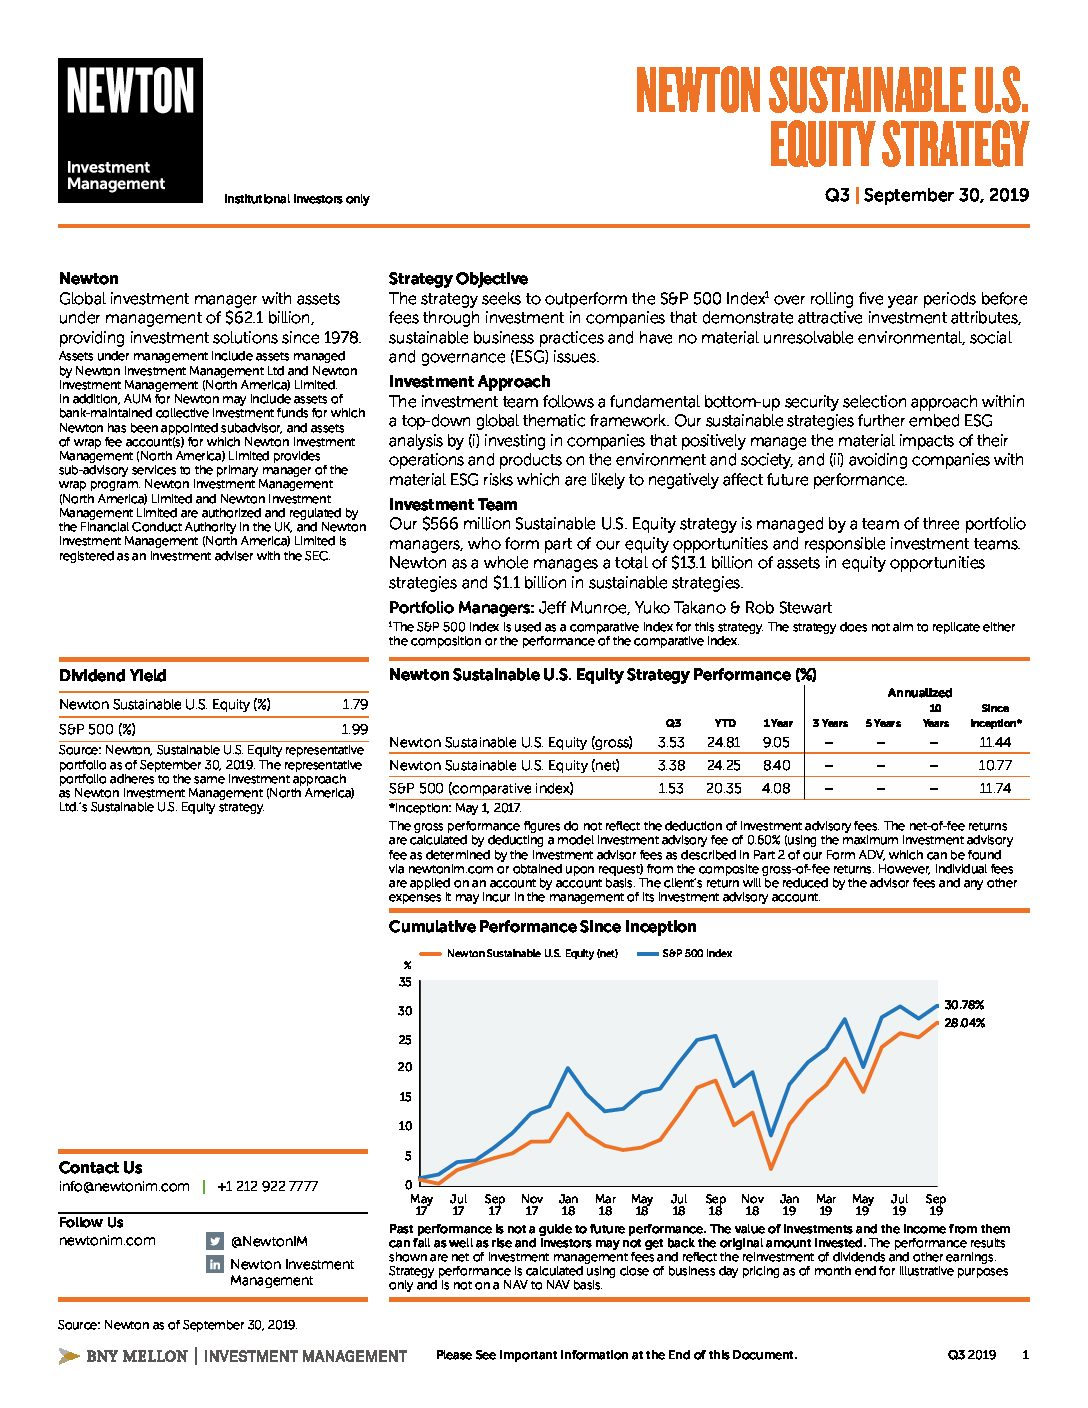 NIMNA Sustainable U.S. Equity Factsheet